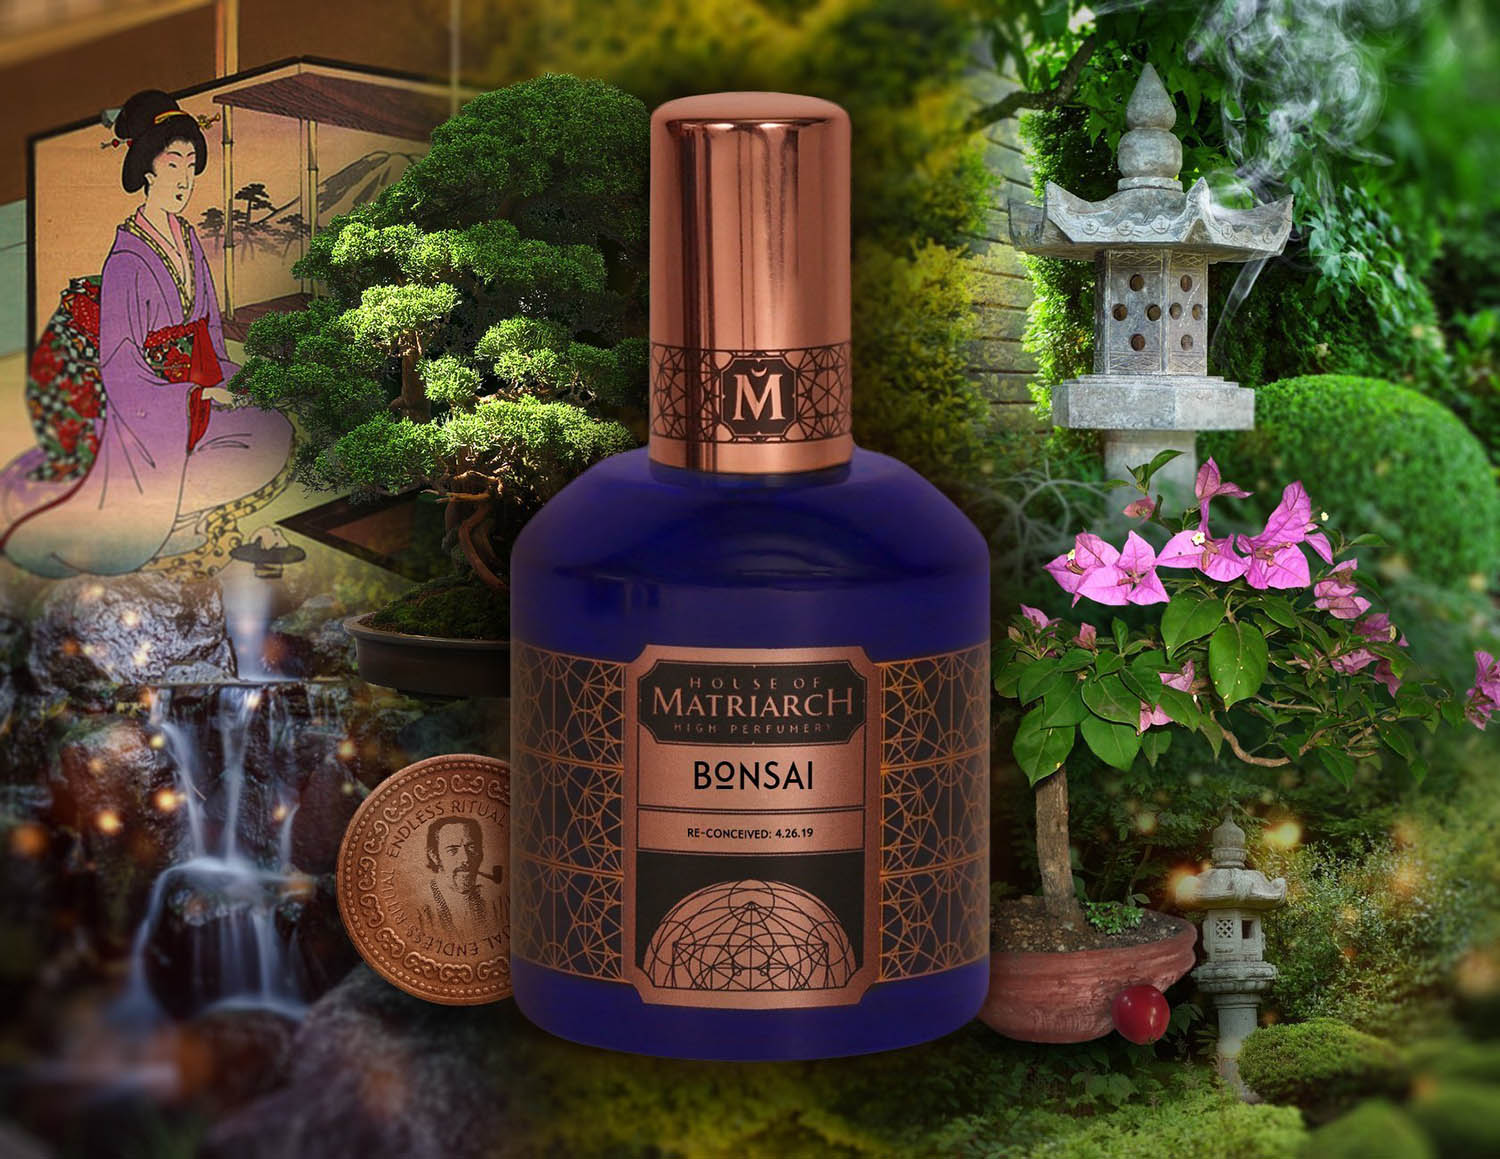 New From House Of Matriarch Bonsai New Fragrances